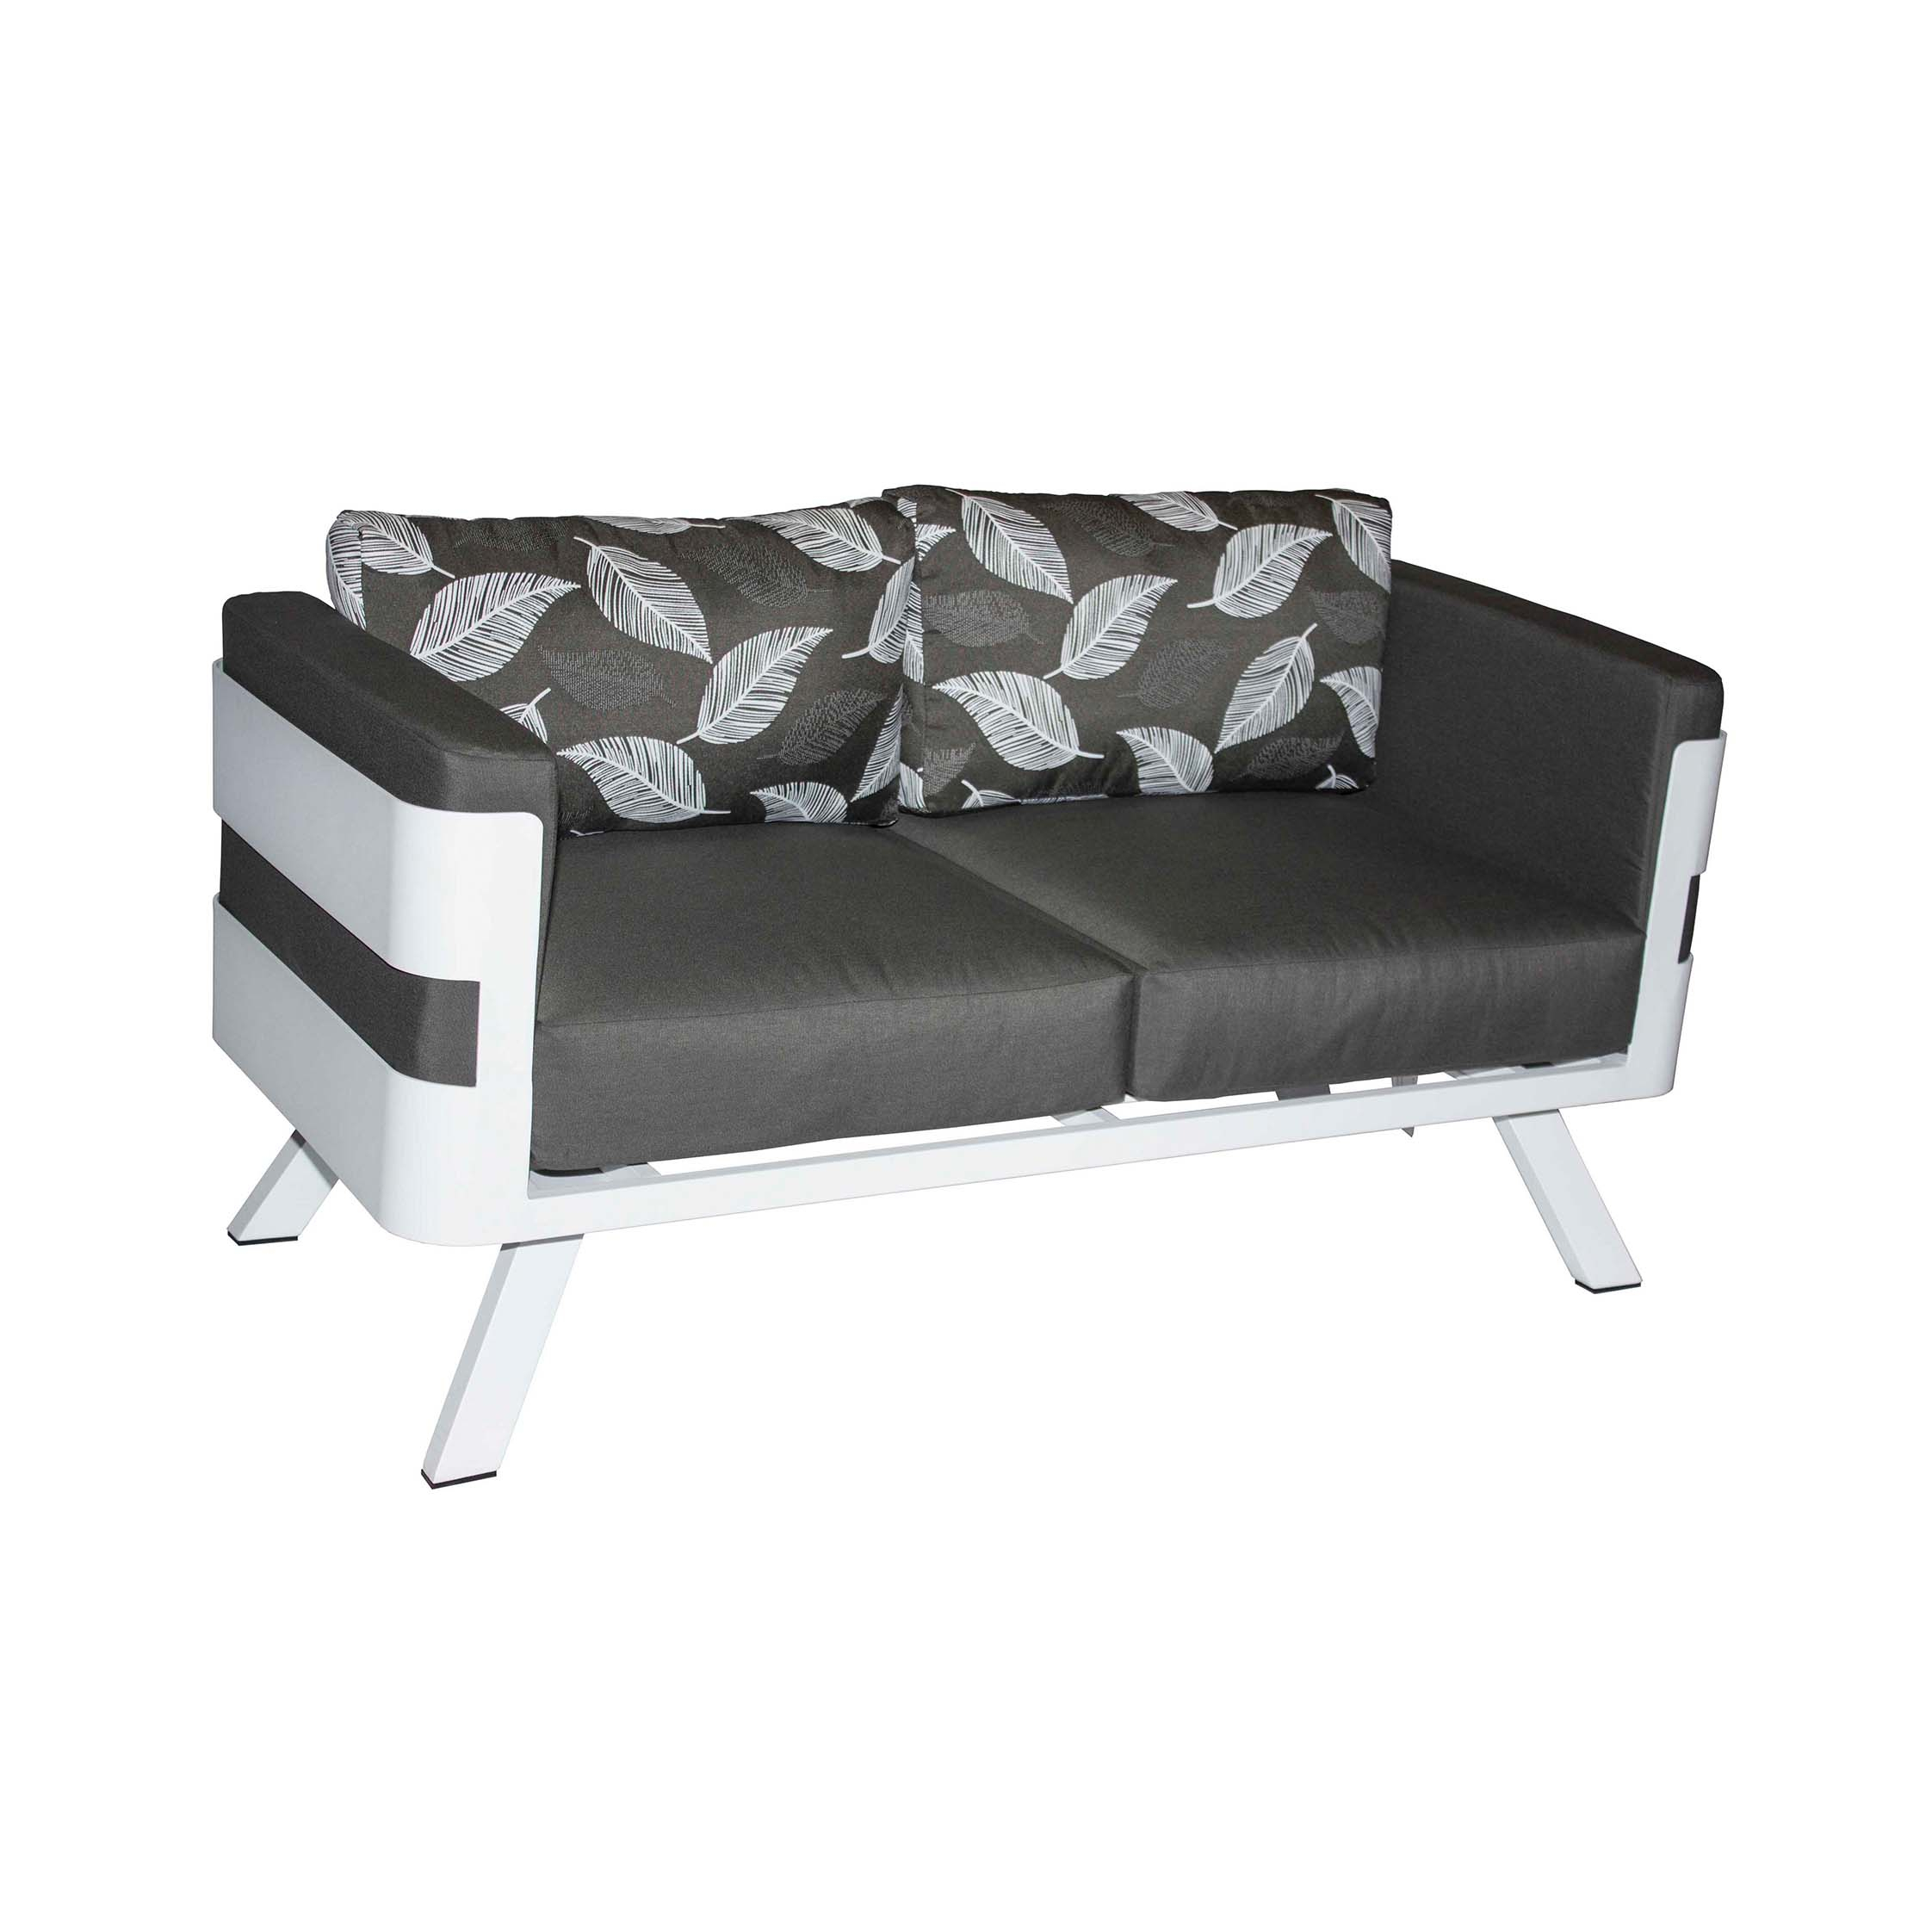 Lesotho 2 Seater Sofa | Patio Warehouse For Allie Dark Grey Sofa Chairs (View 12 of 25)